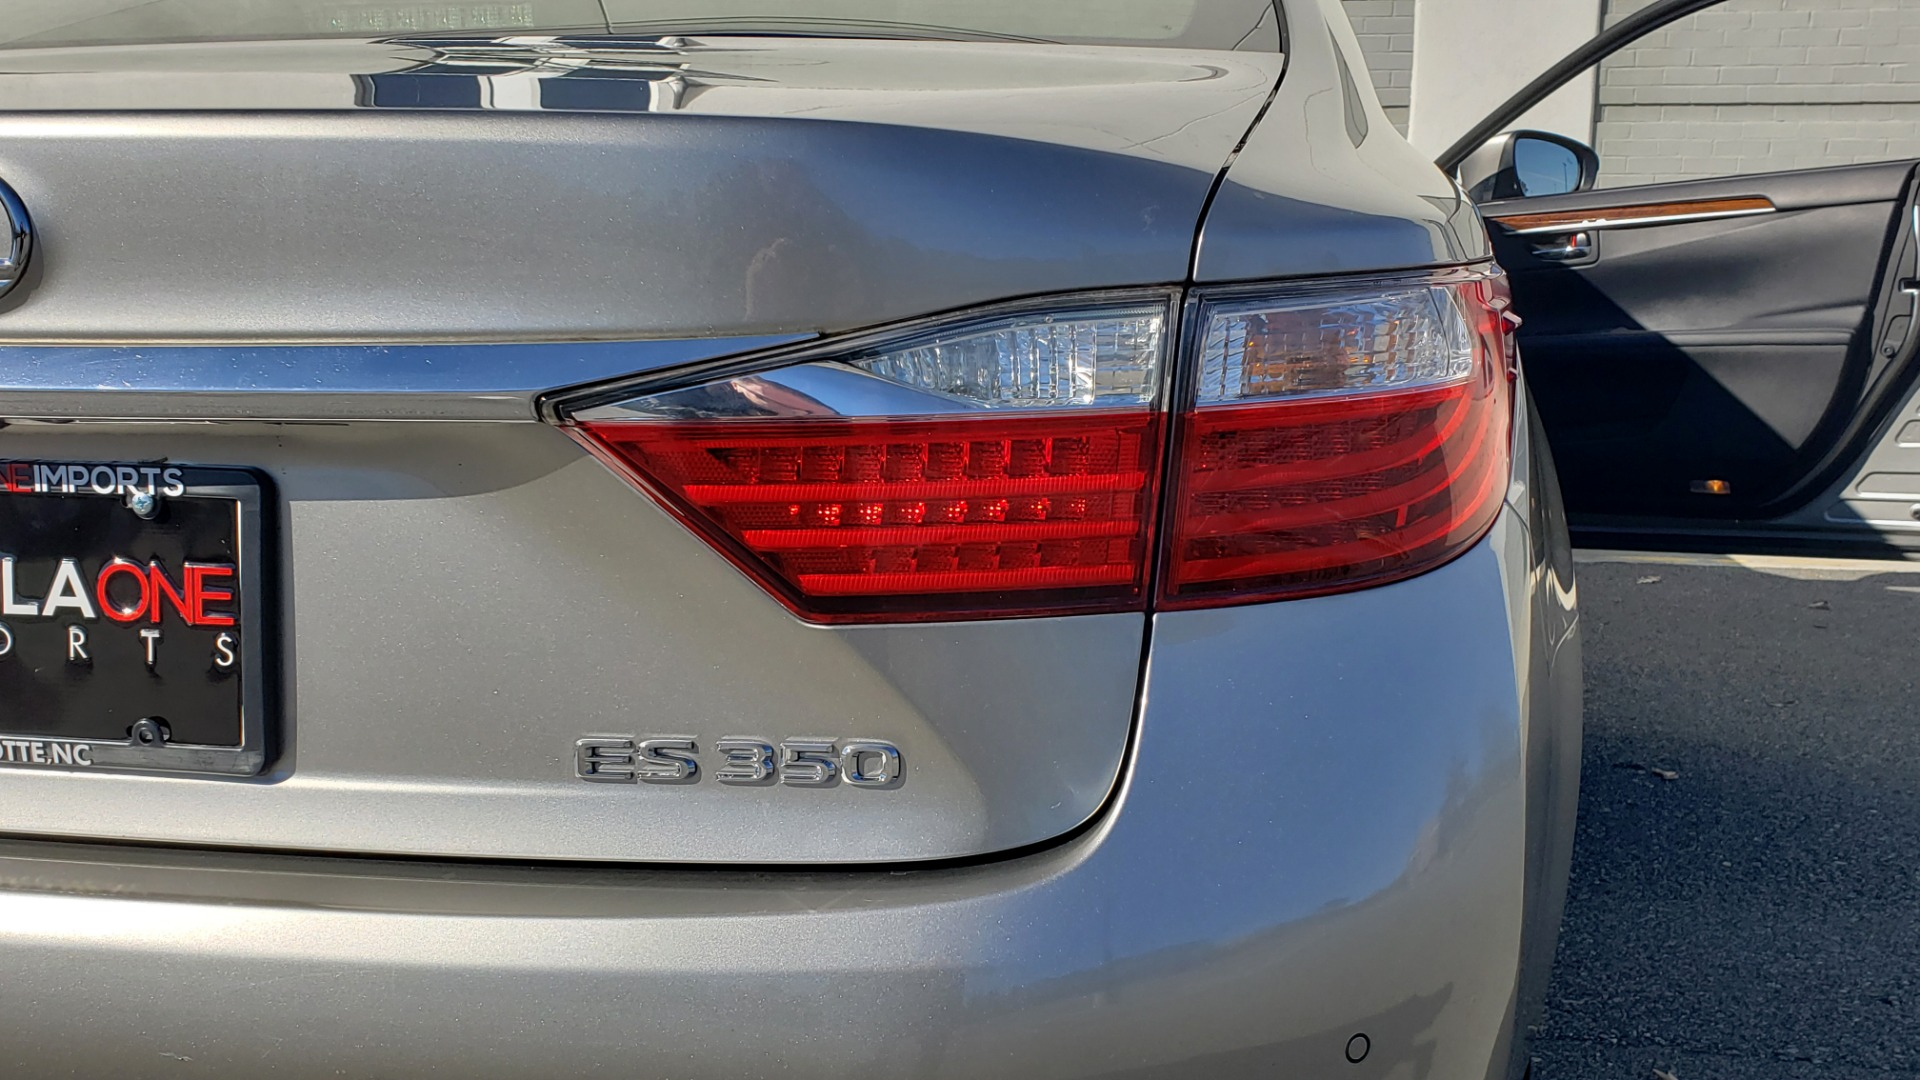 Used 2015 Lexus ES 350 LUXURY PKG / NAV / BSM / LCA / PARK ASSIST / REARVIEW for sale Sold at Formula Imports in Charlotte NC 28227 25